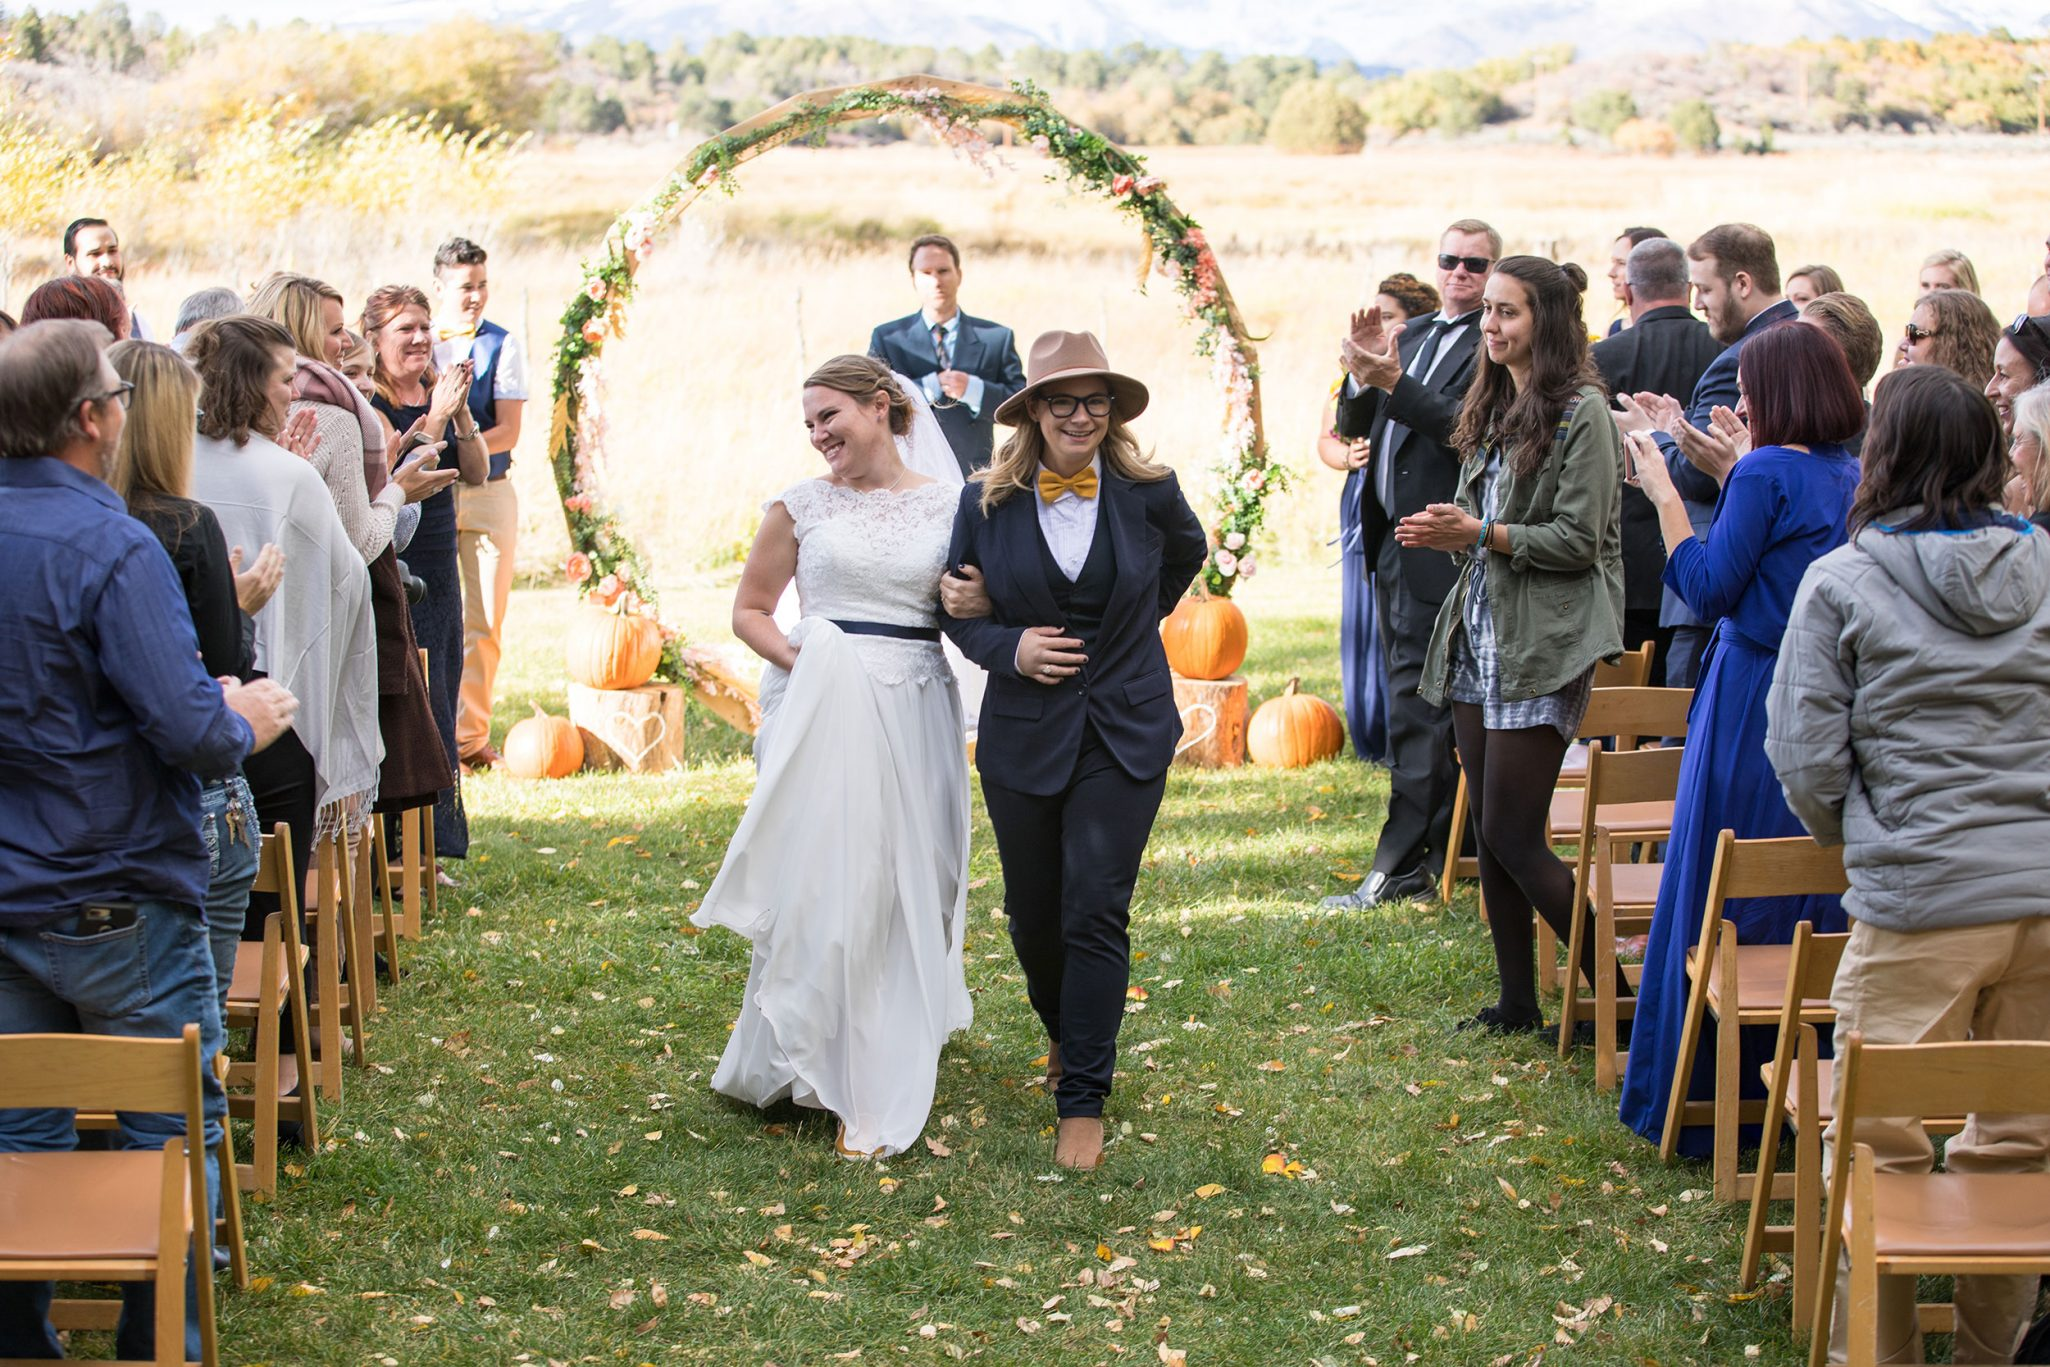 A same-sex autumn ceremony at Ridgewood Event Center, Durango Colorado